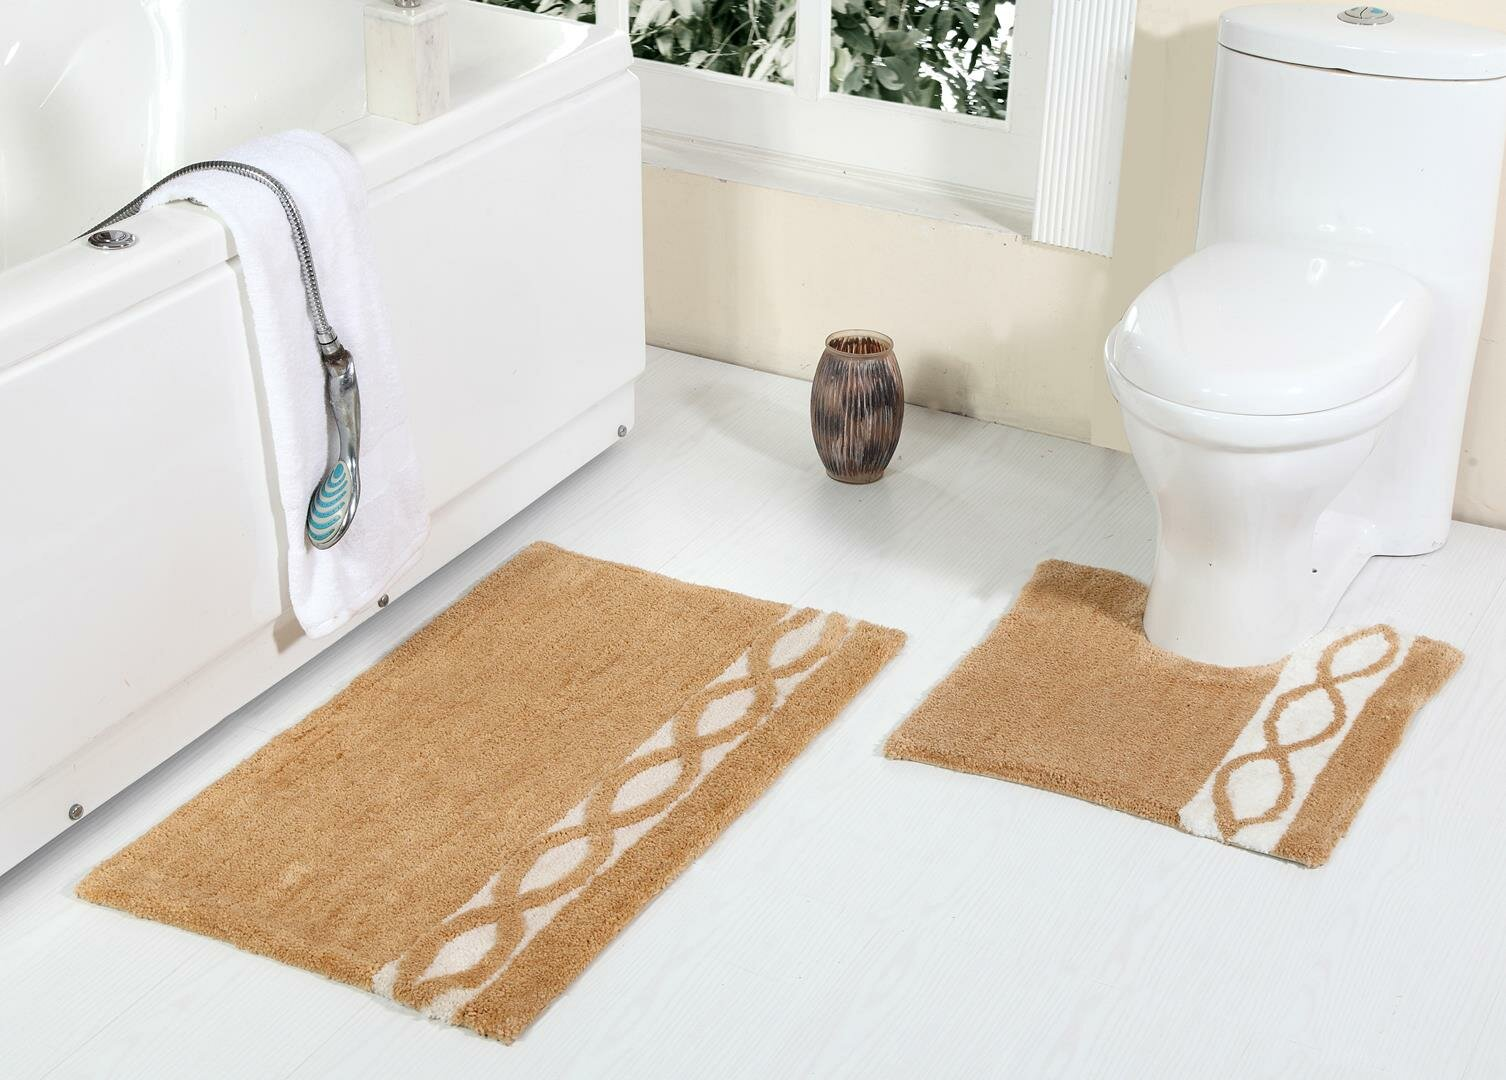 3 Piece Soft Area Rug Sets Includes House On The Hill Bathroom Mat Contour Rug Lid Toilet Cover for Bedroom Bathroom Kitchen Floor Mats Shower Rugs Set